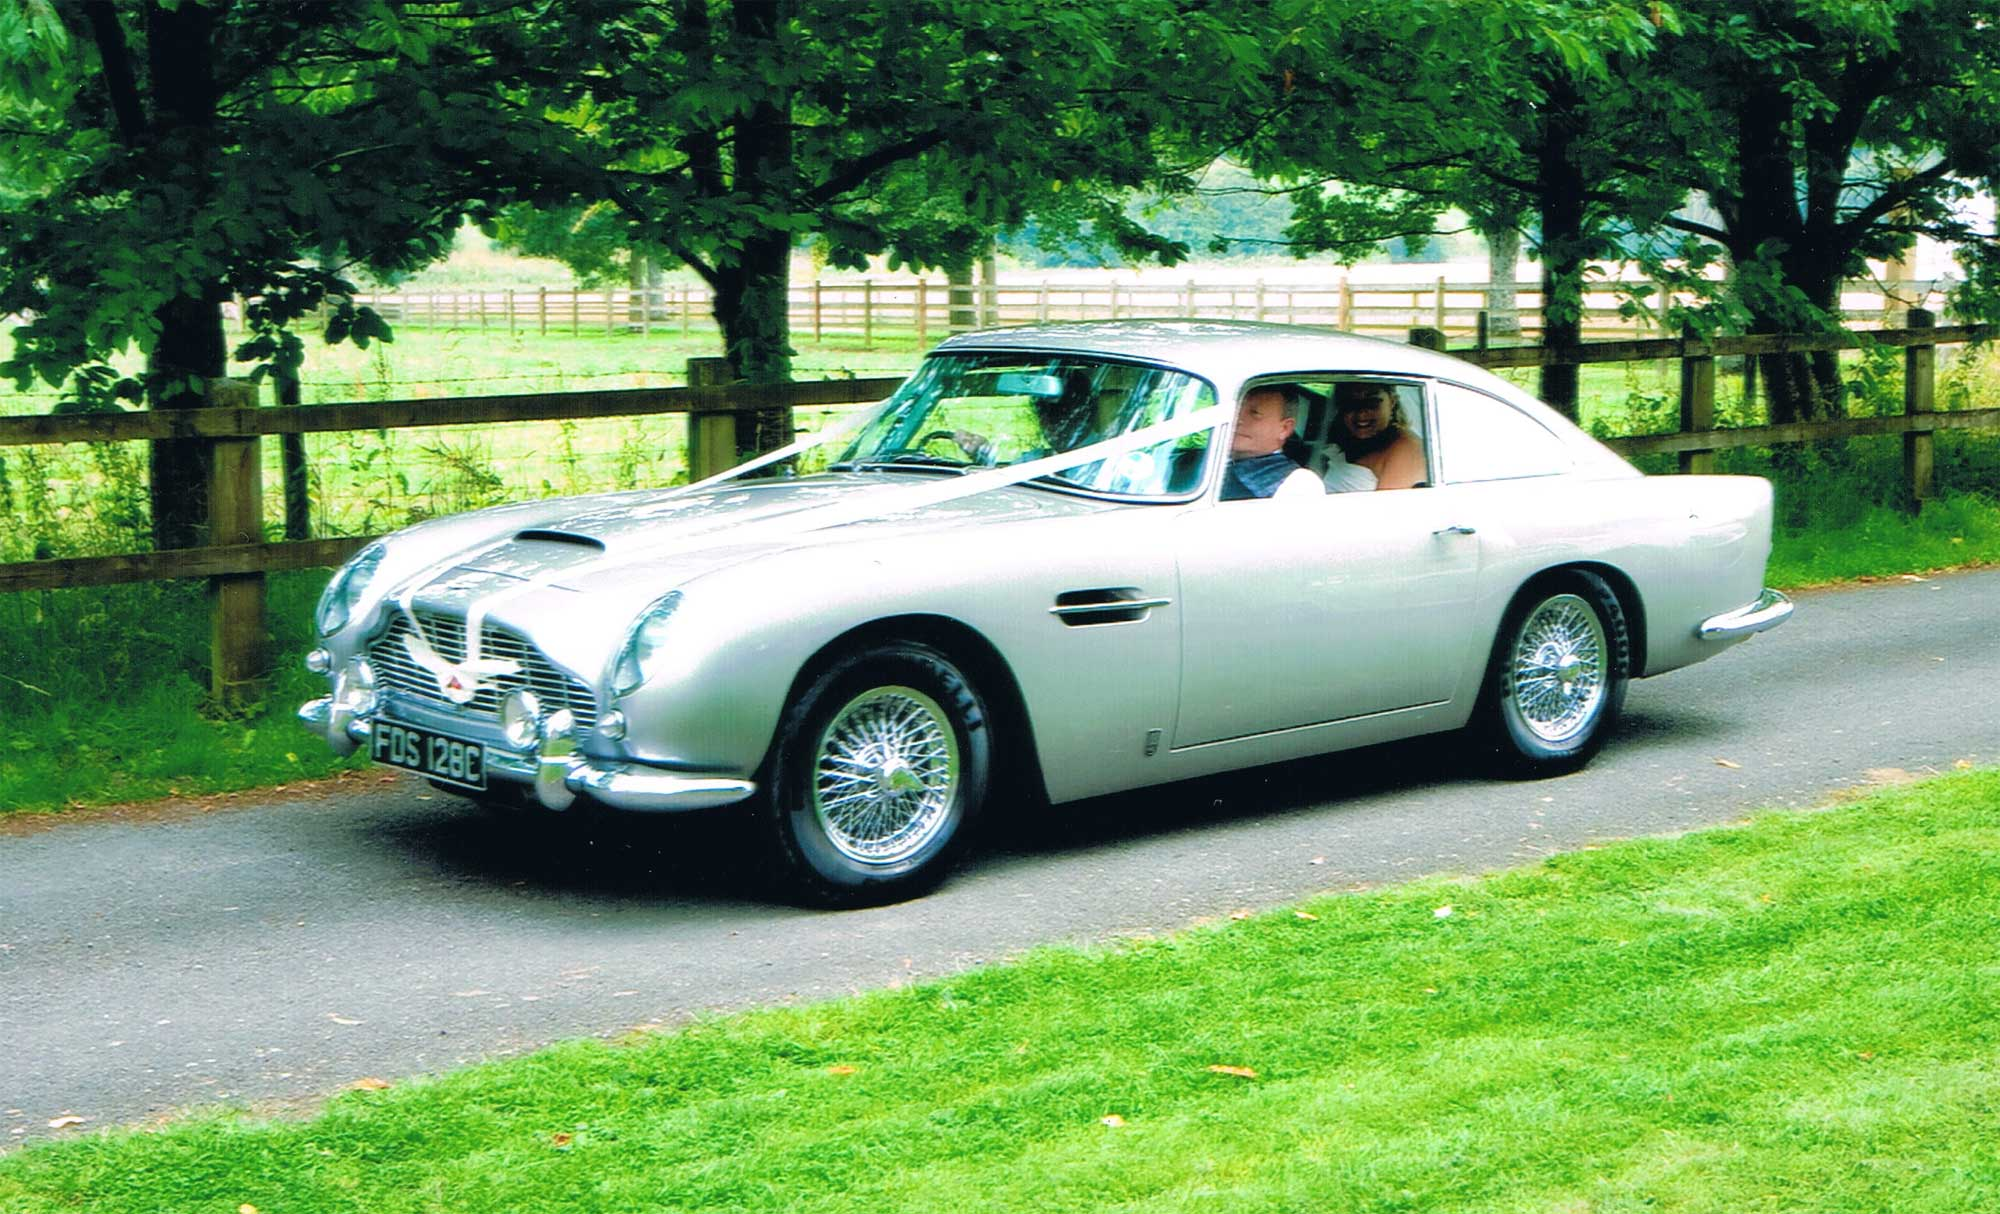 aston martin db5 hire yorkshire fiat world test drive. Black Bedroom Furniture Sets. Home Design Ideas